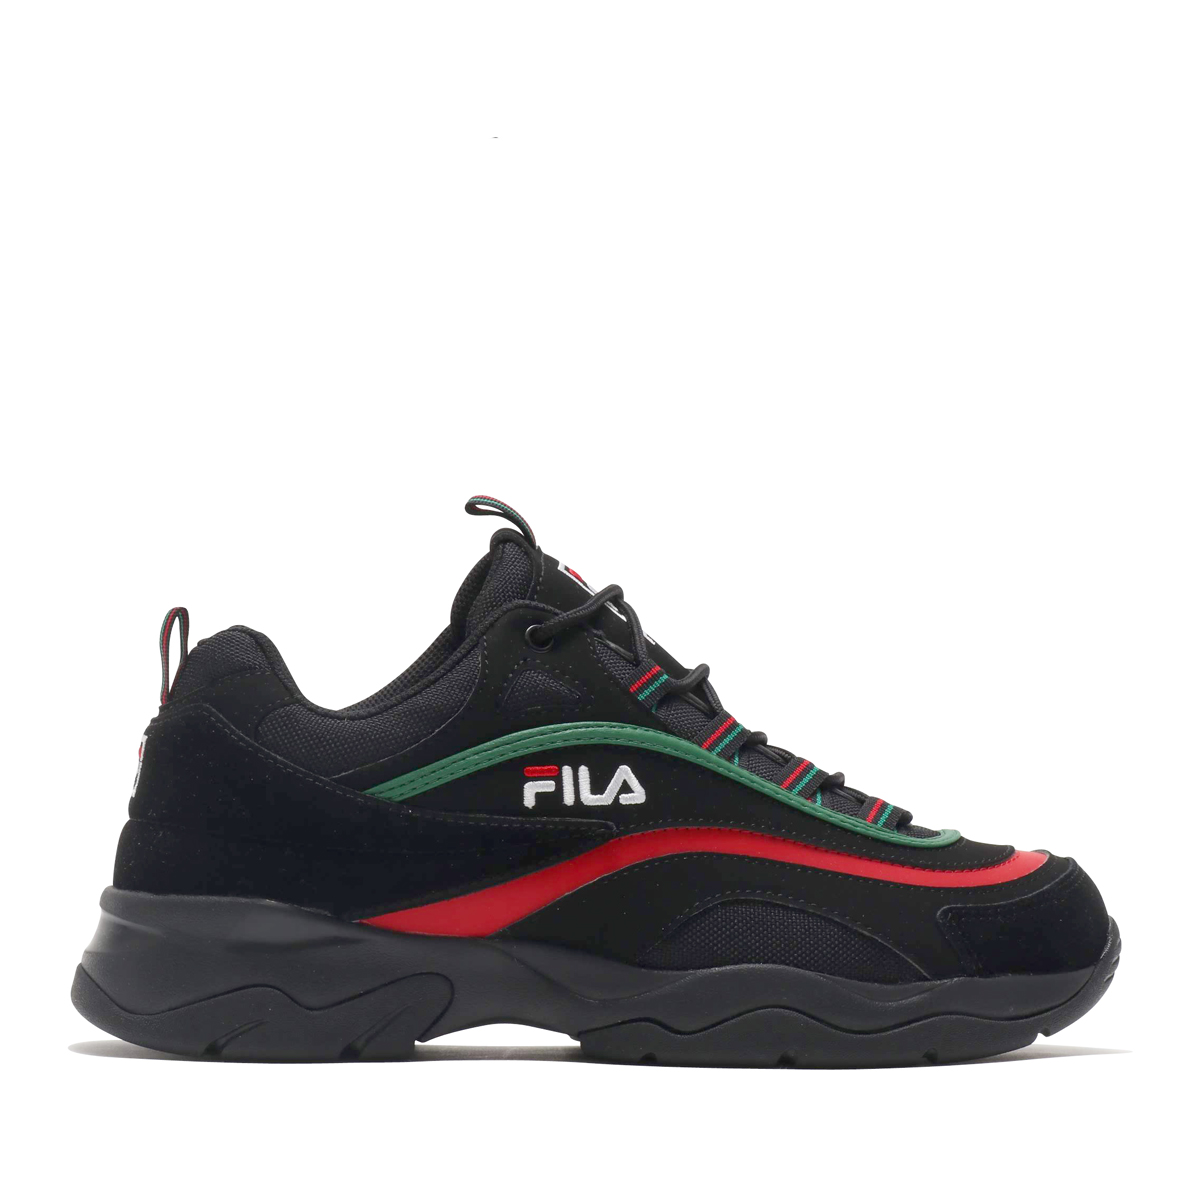 fila green and red